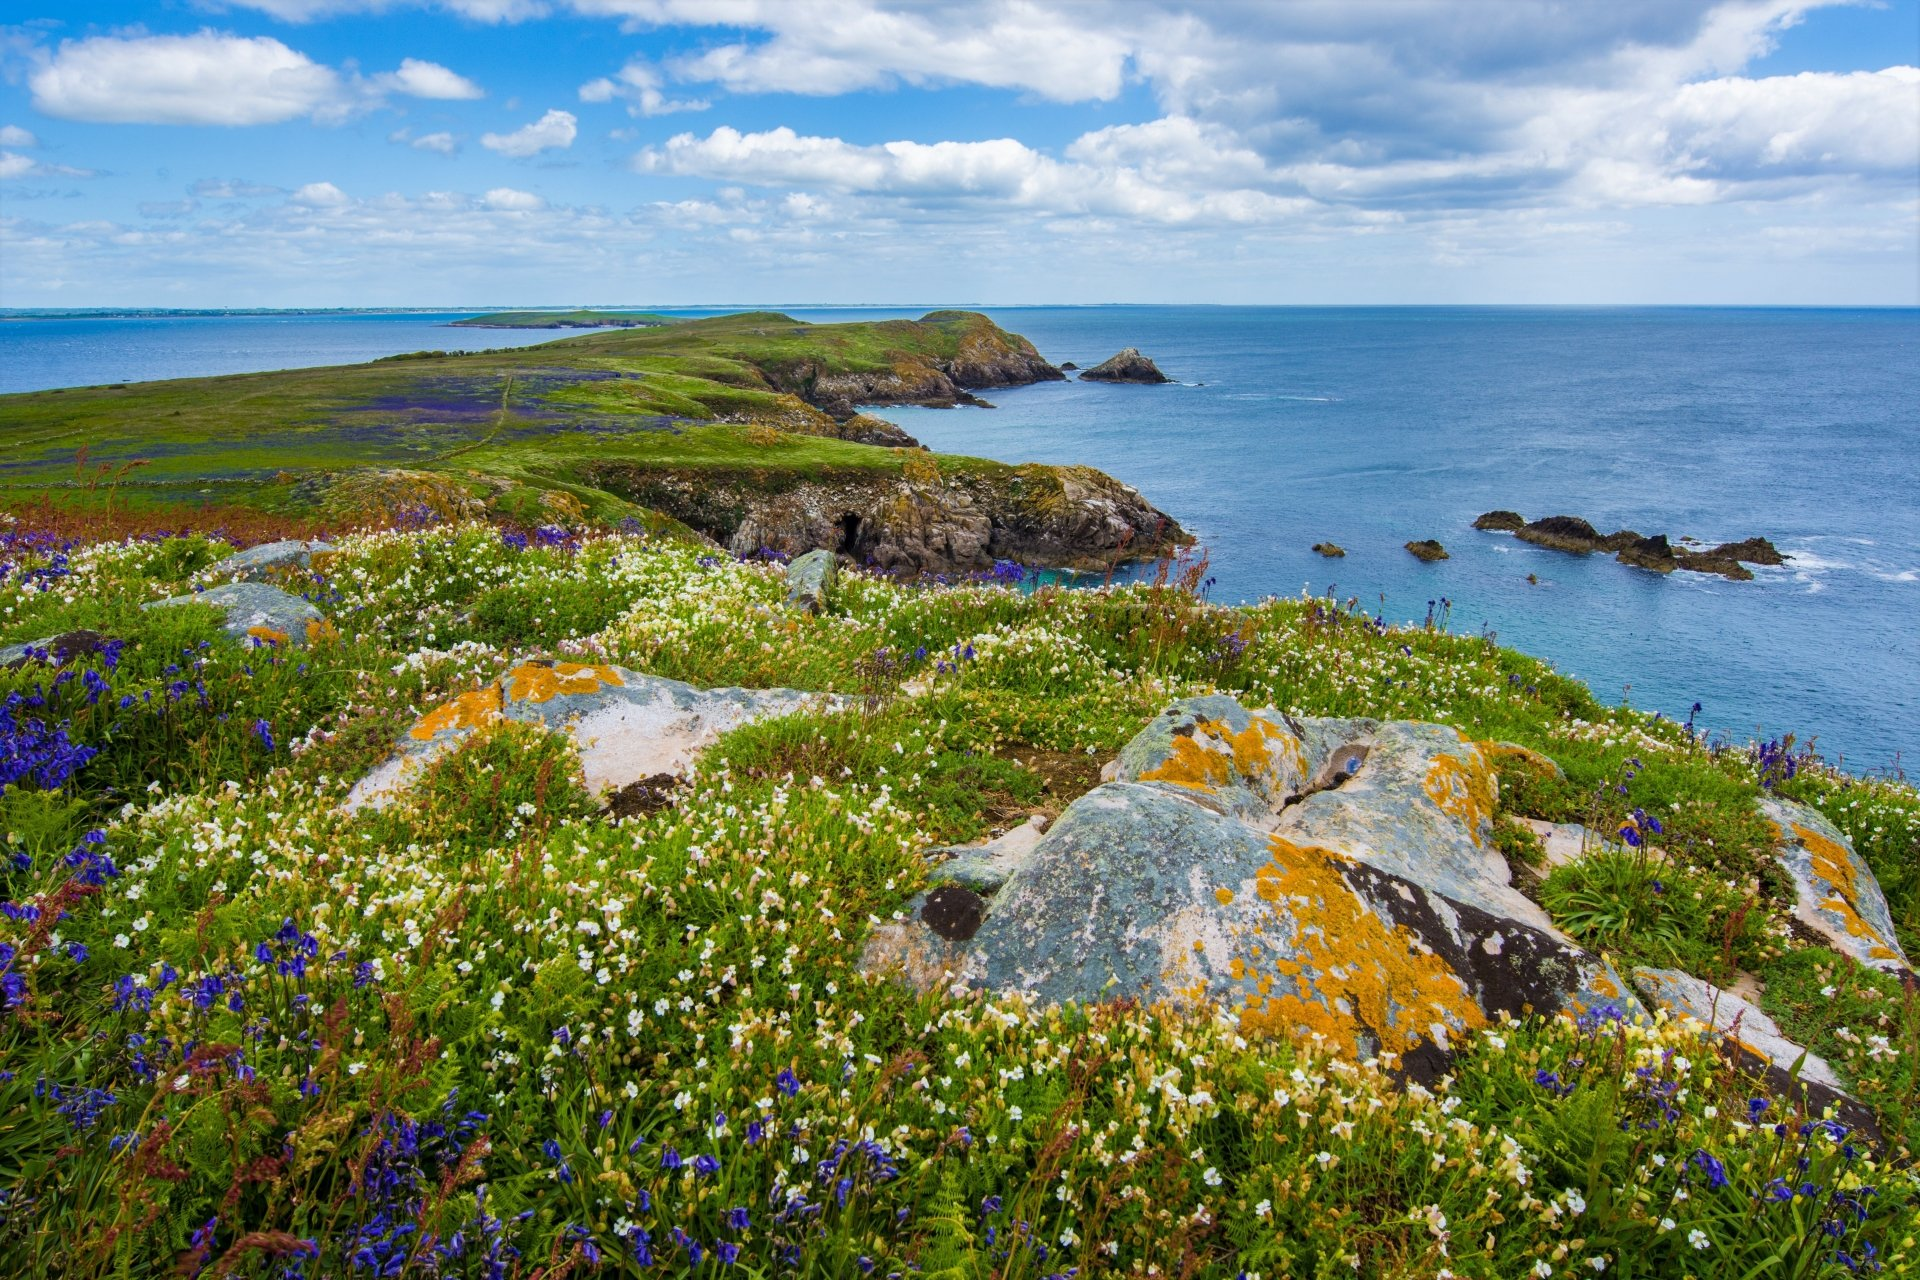 Earth - Coastline  Cloud Horizon Earth Coast Ocean Sea Flower Ireland Wallpaper